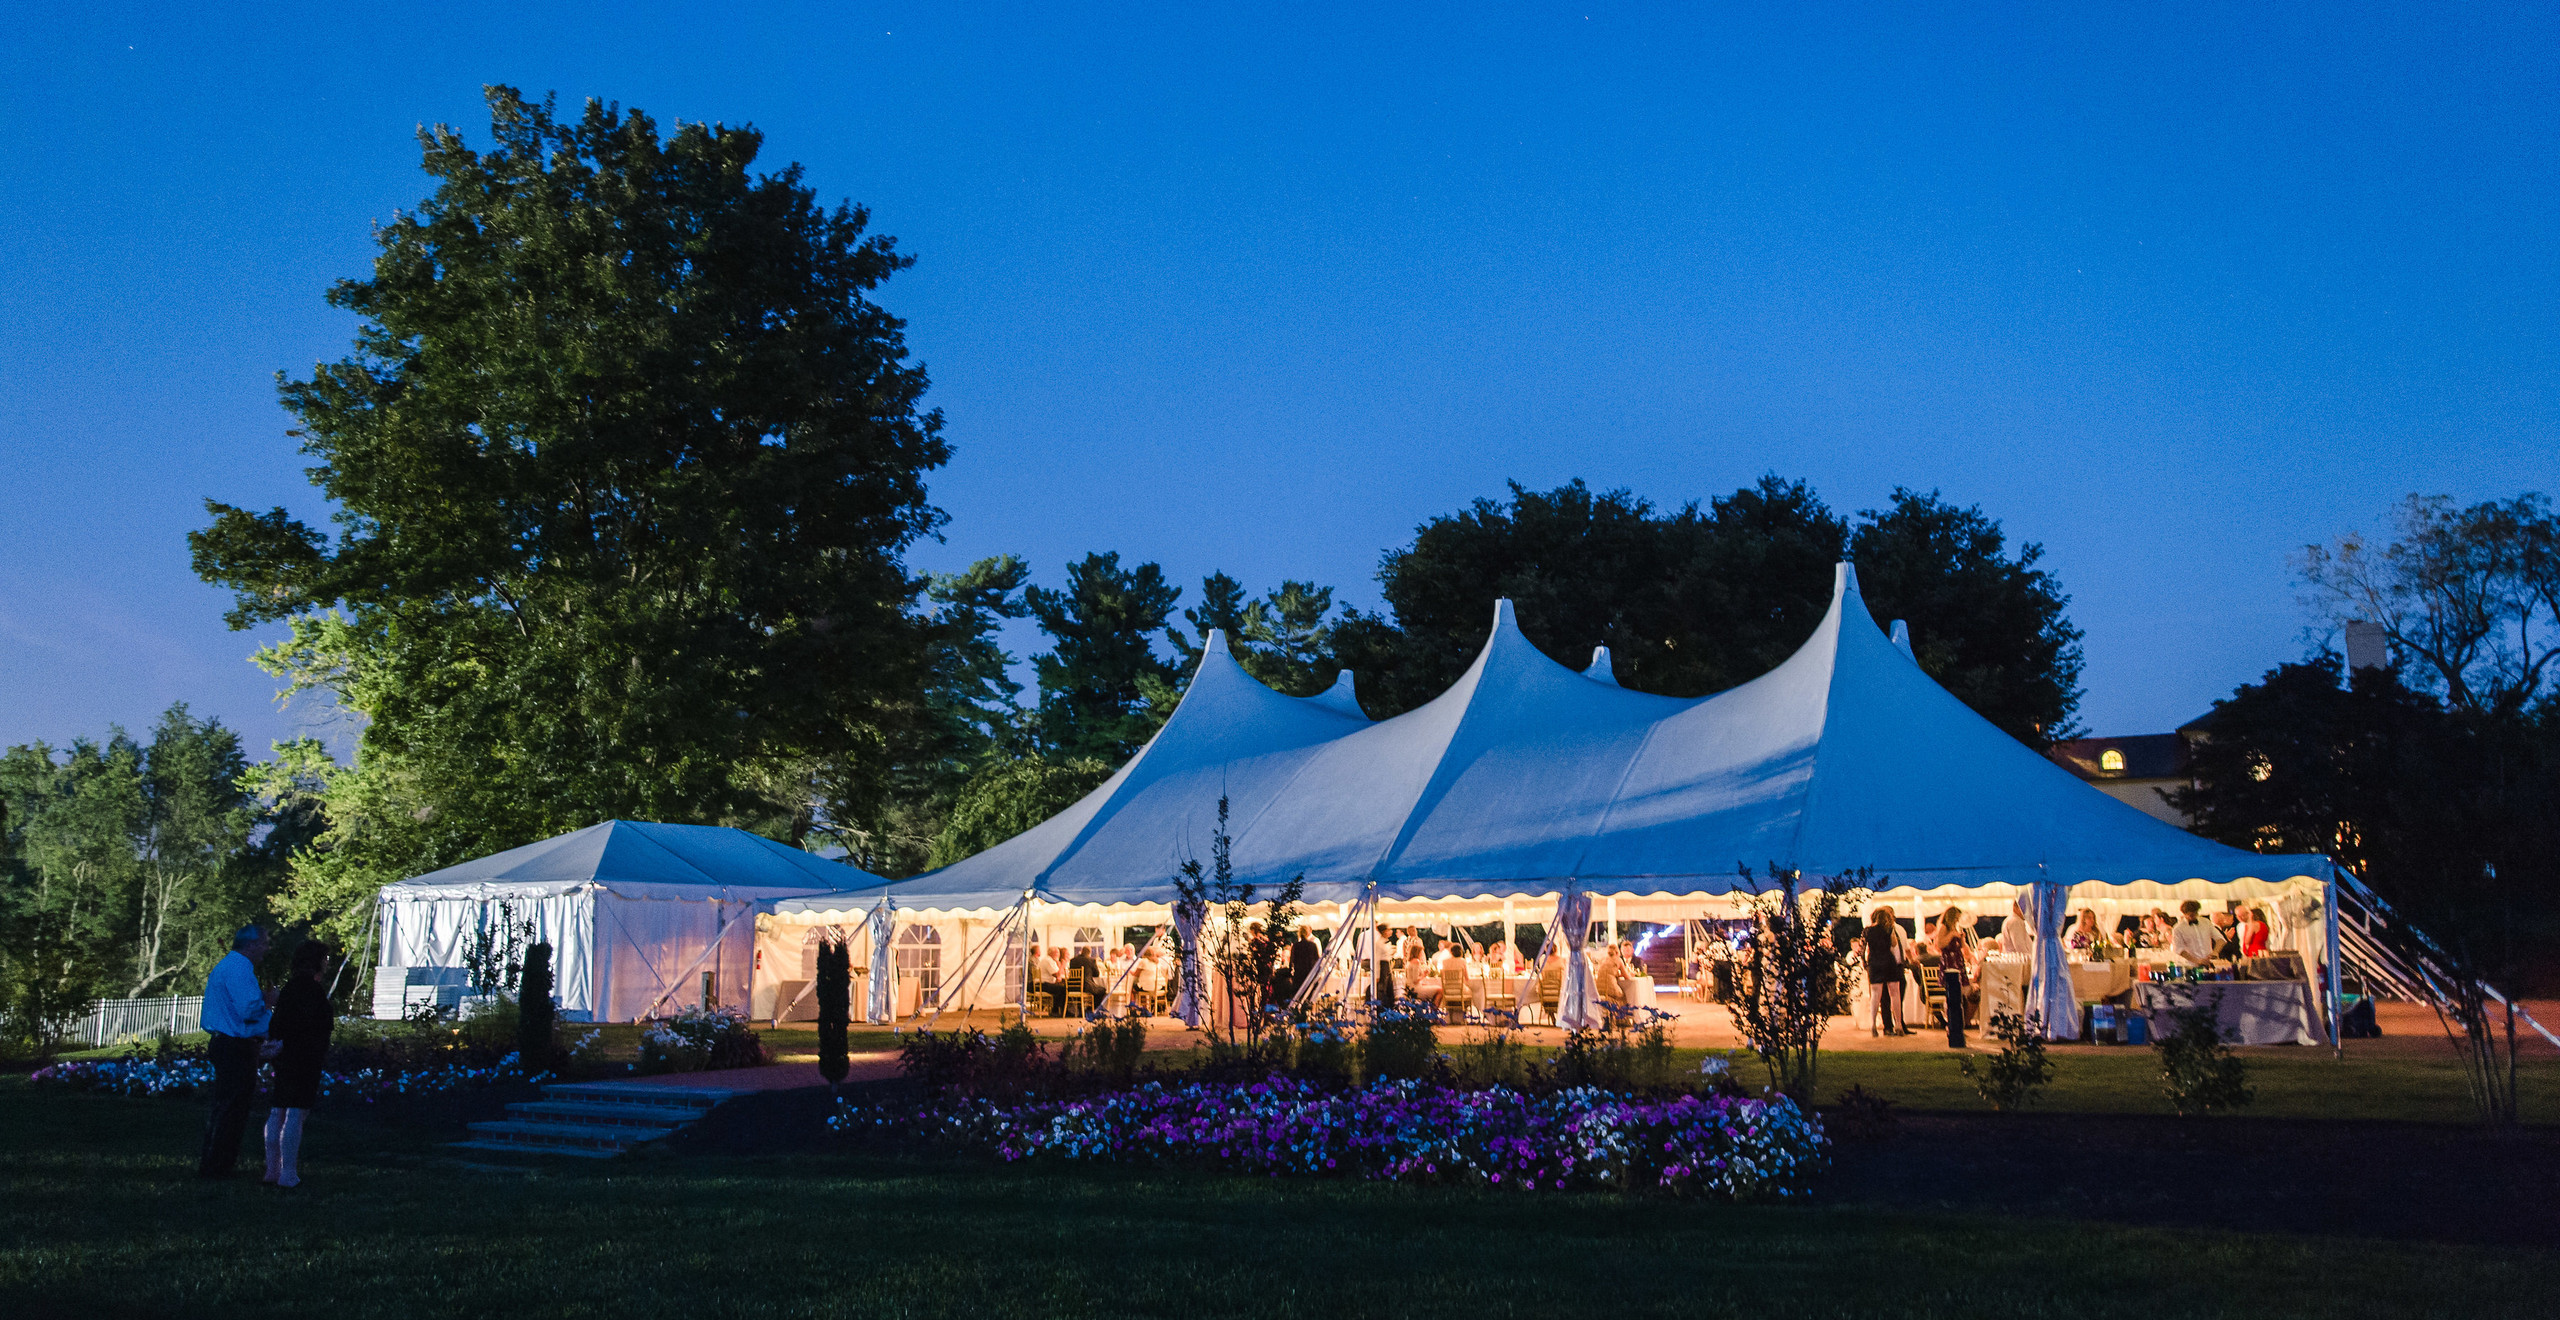 the wedding tent at dusk